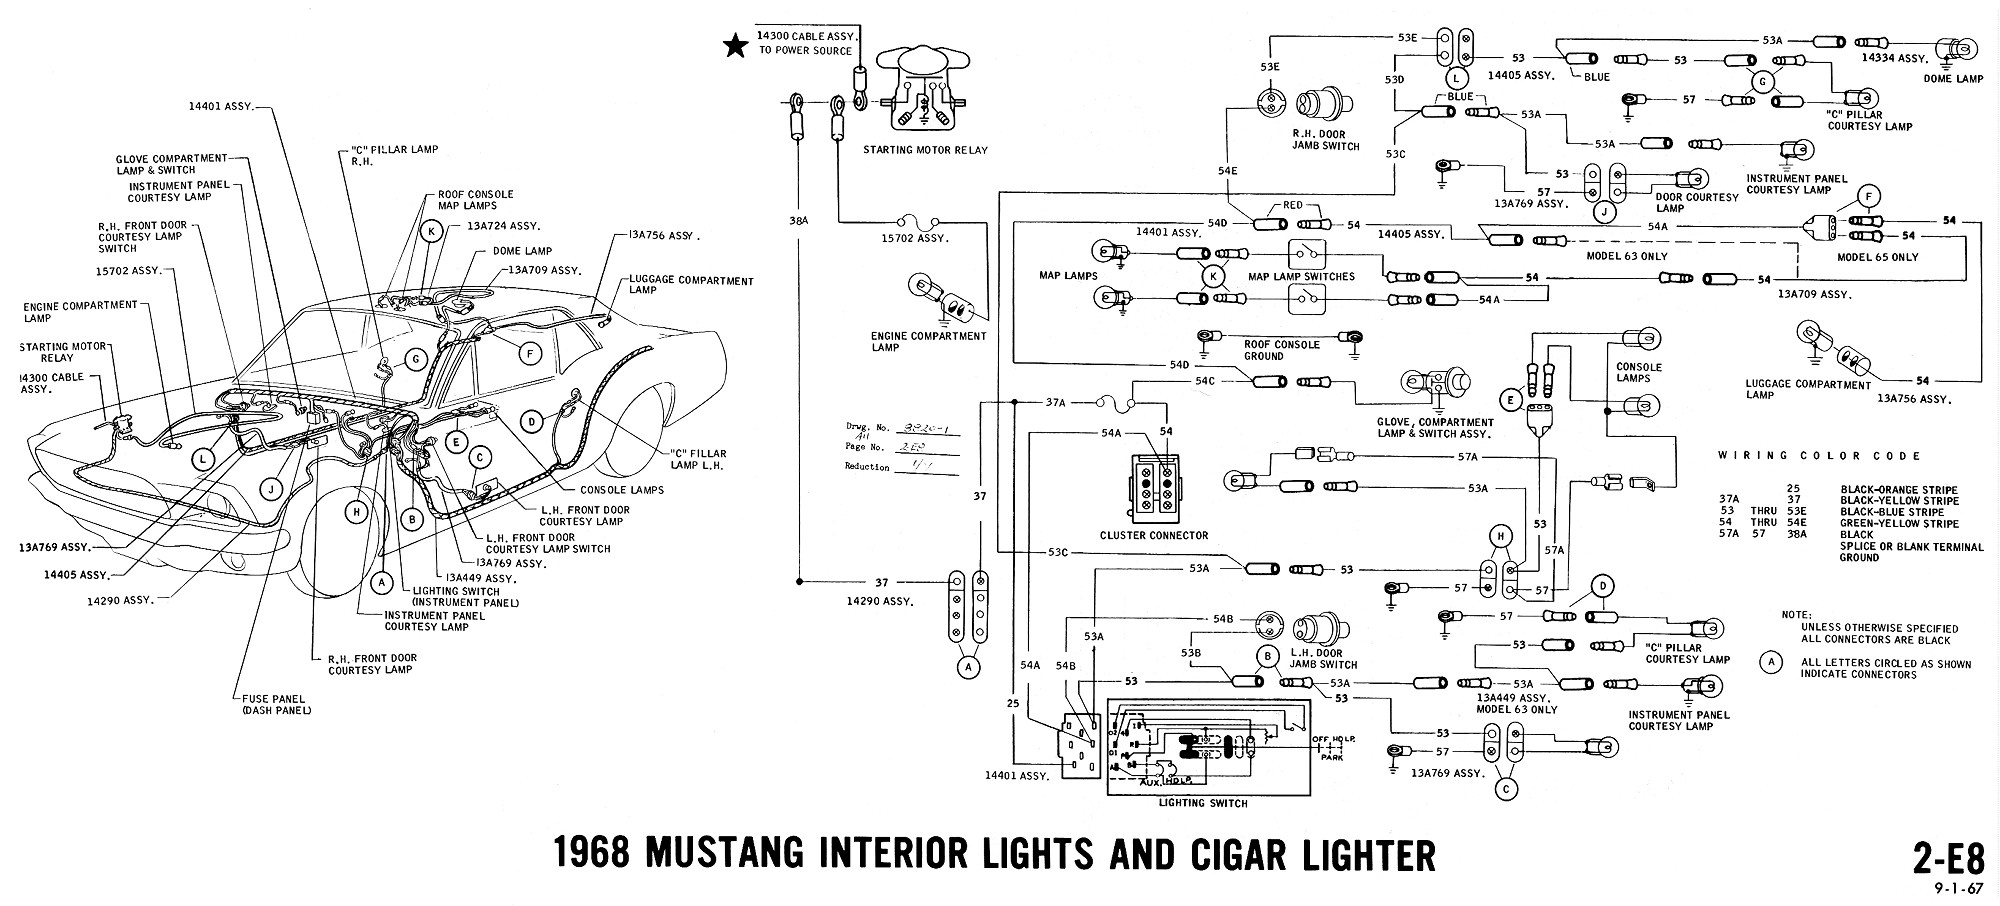 1968 ford mustang wiring harness diagram wiring diagram1968 ford mustang wiring diagram wiring diagram1968 ford mustang wiring diagram